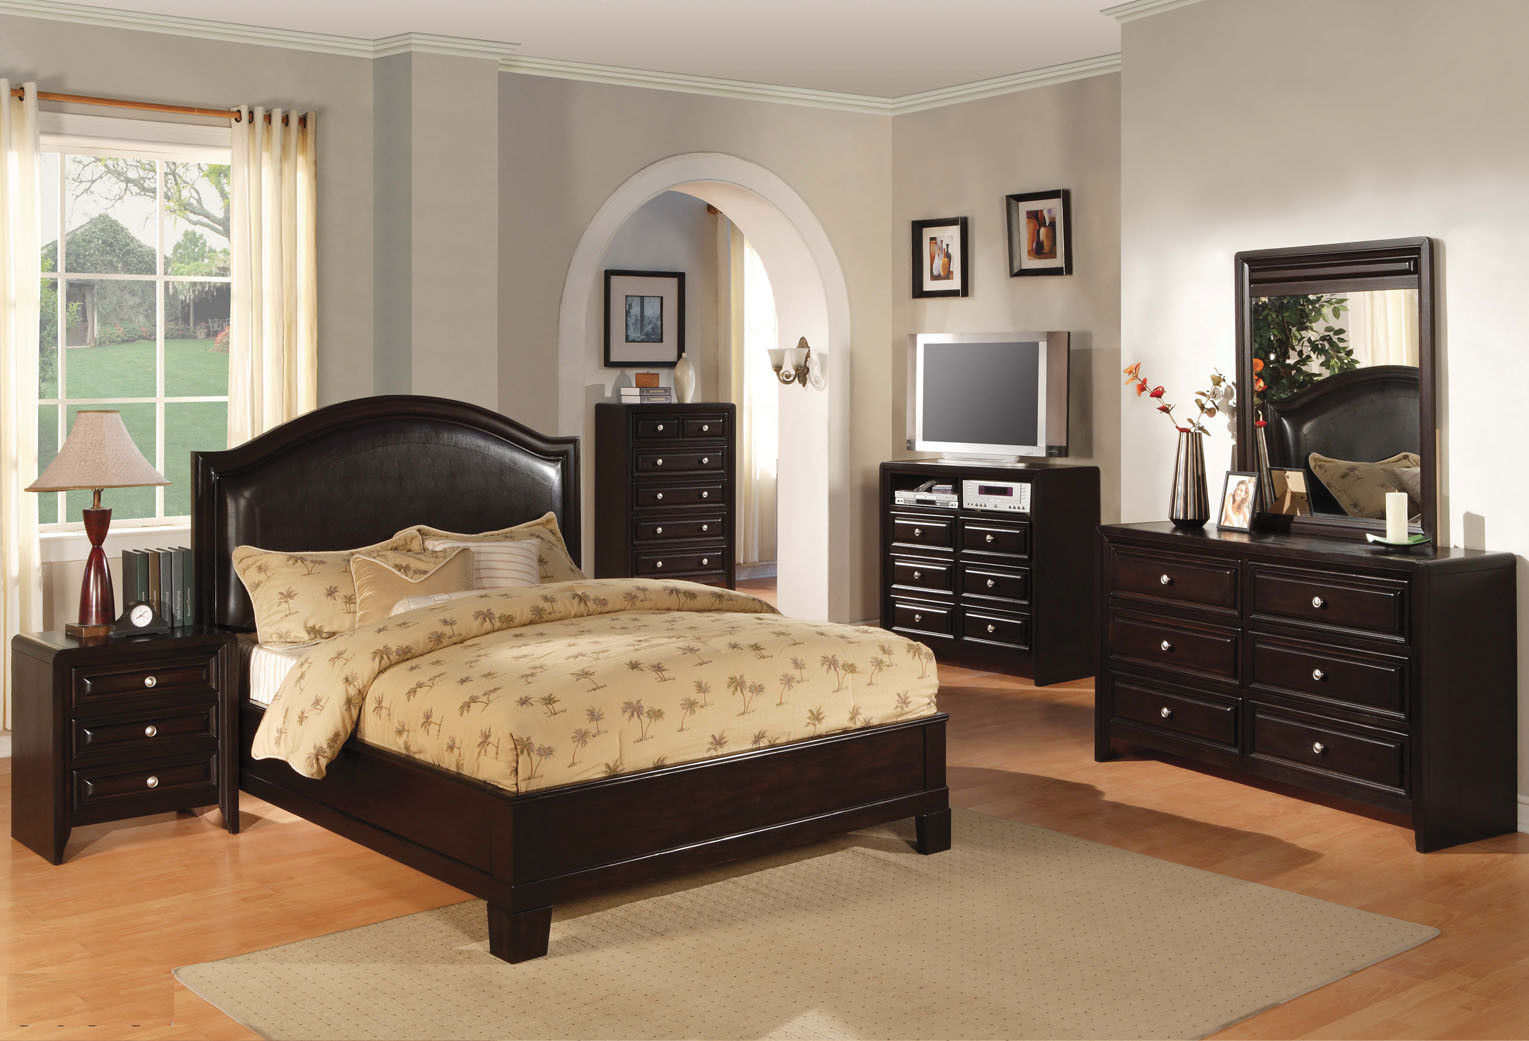 Best ideas about Discount Bedroom Furniture . Save or Pin Cool Cheap Bedroom Furniture Now.